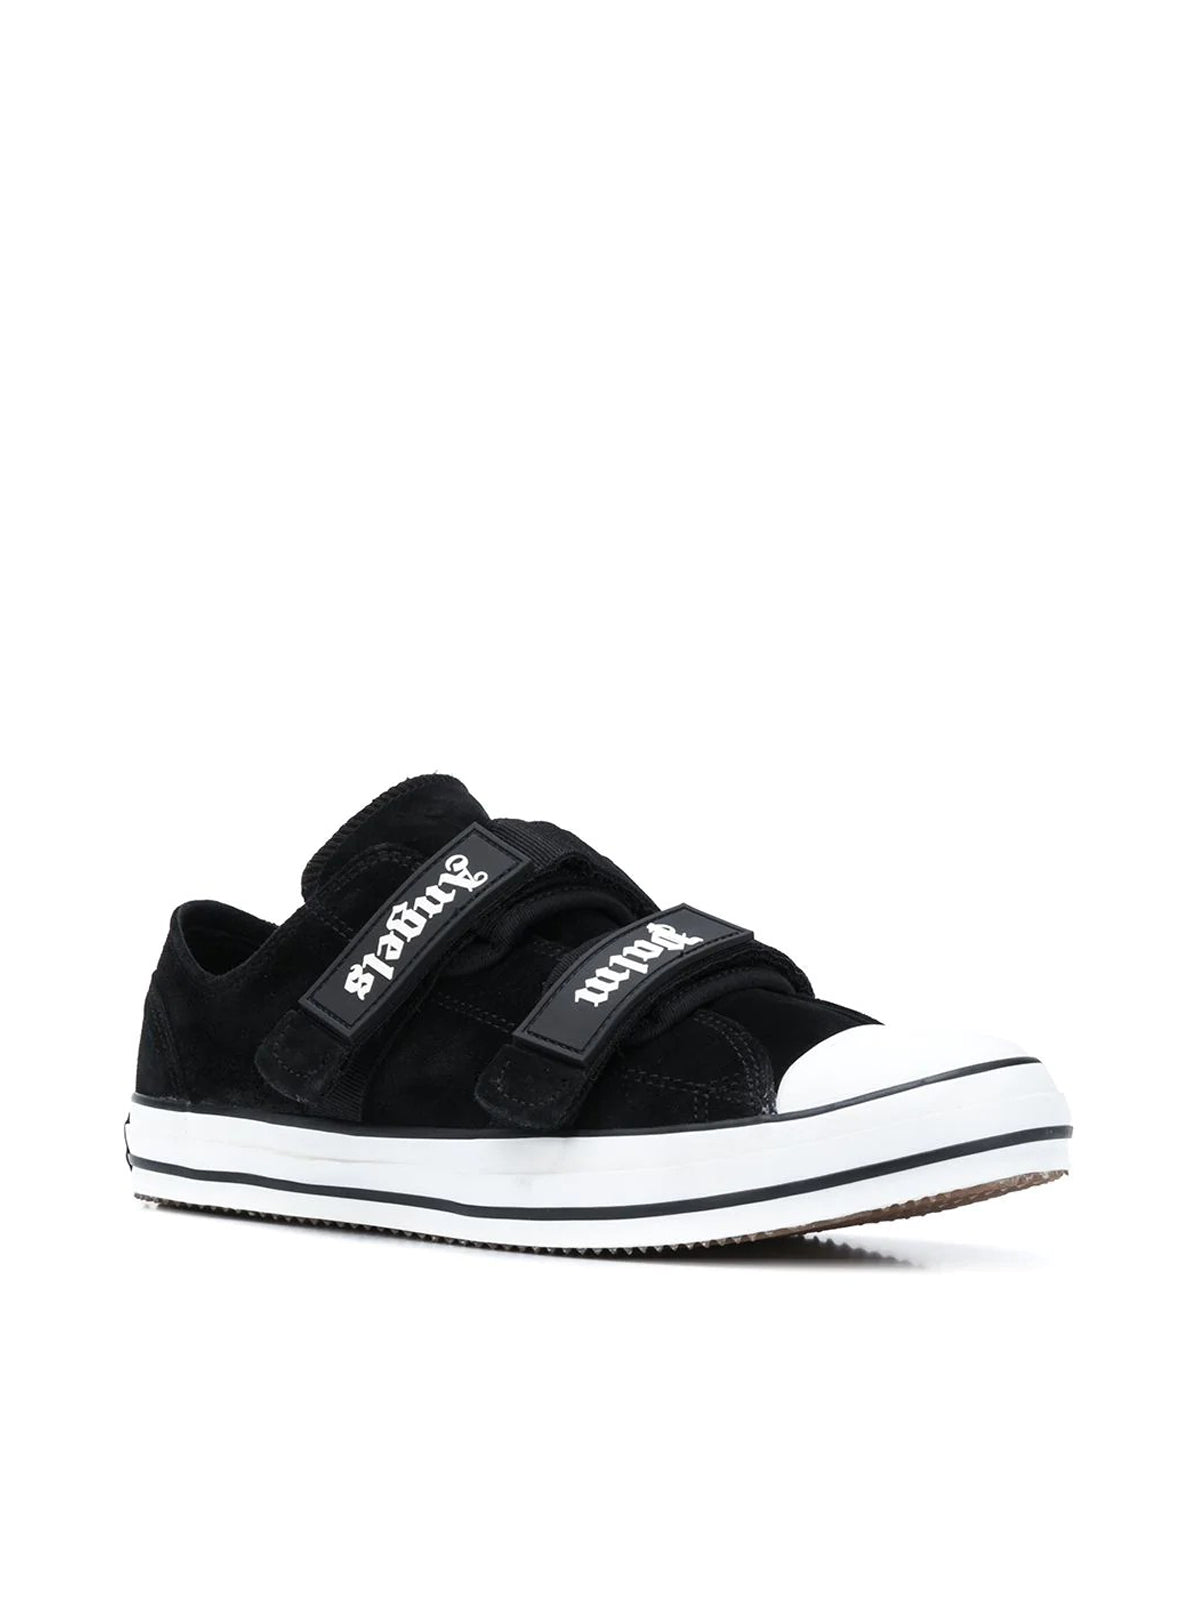 touch-strap low-top sneakers